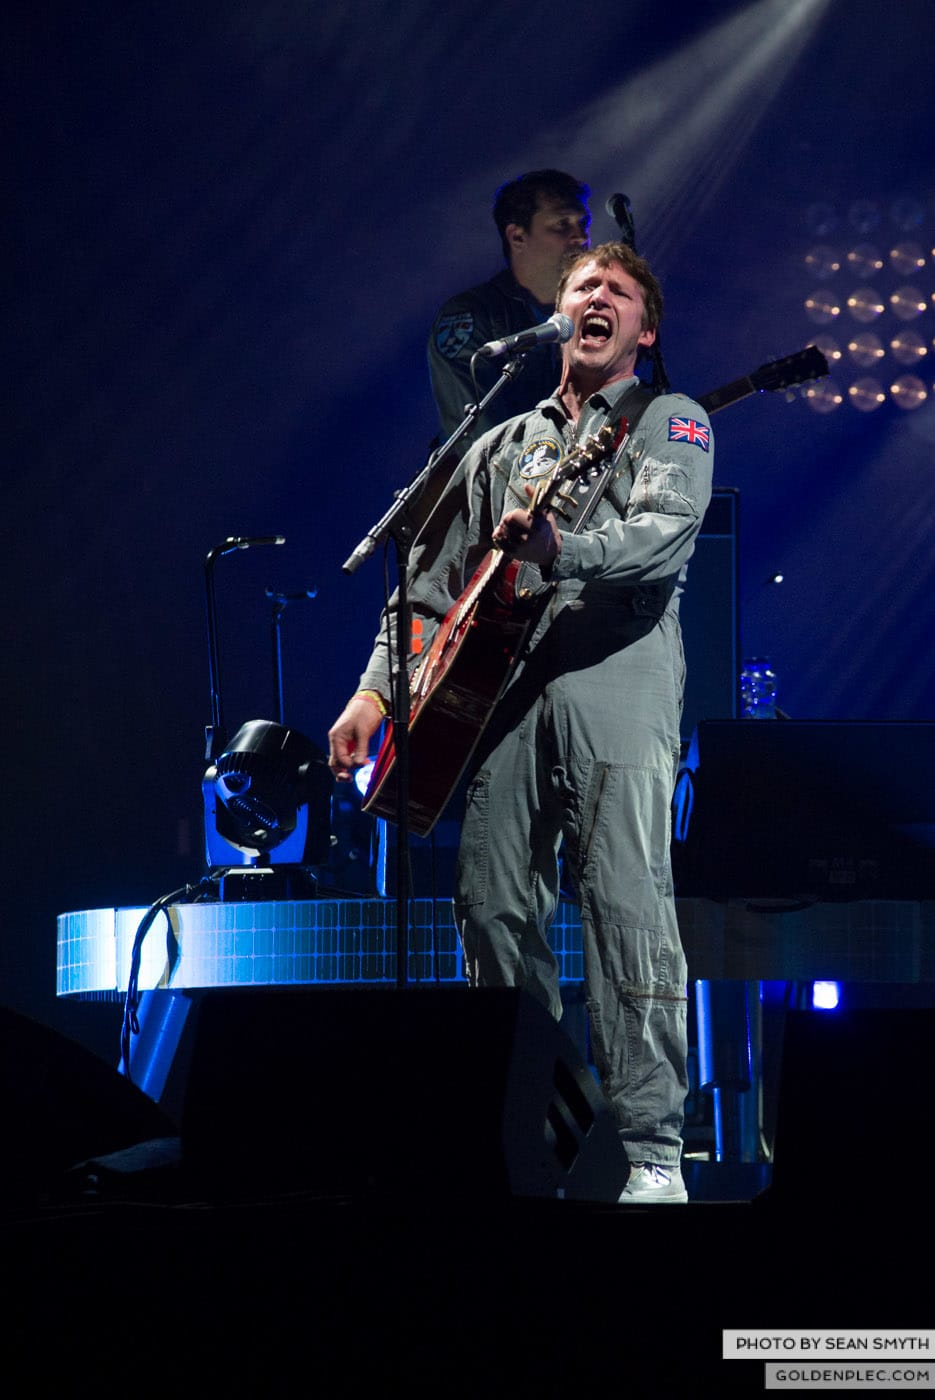 james-blunt-at-3arena-by-sean-smyth-20-11-14-25-of-29